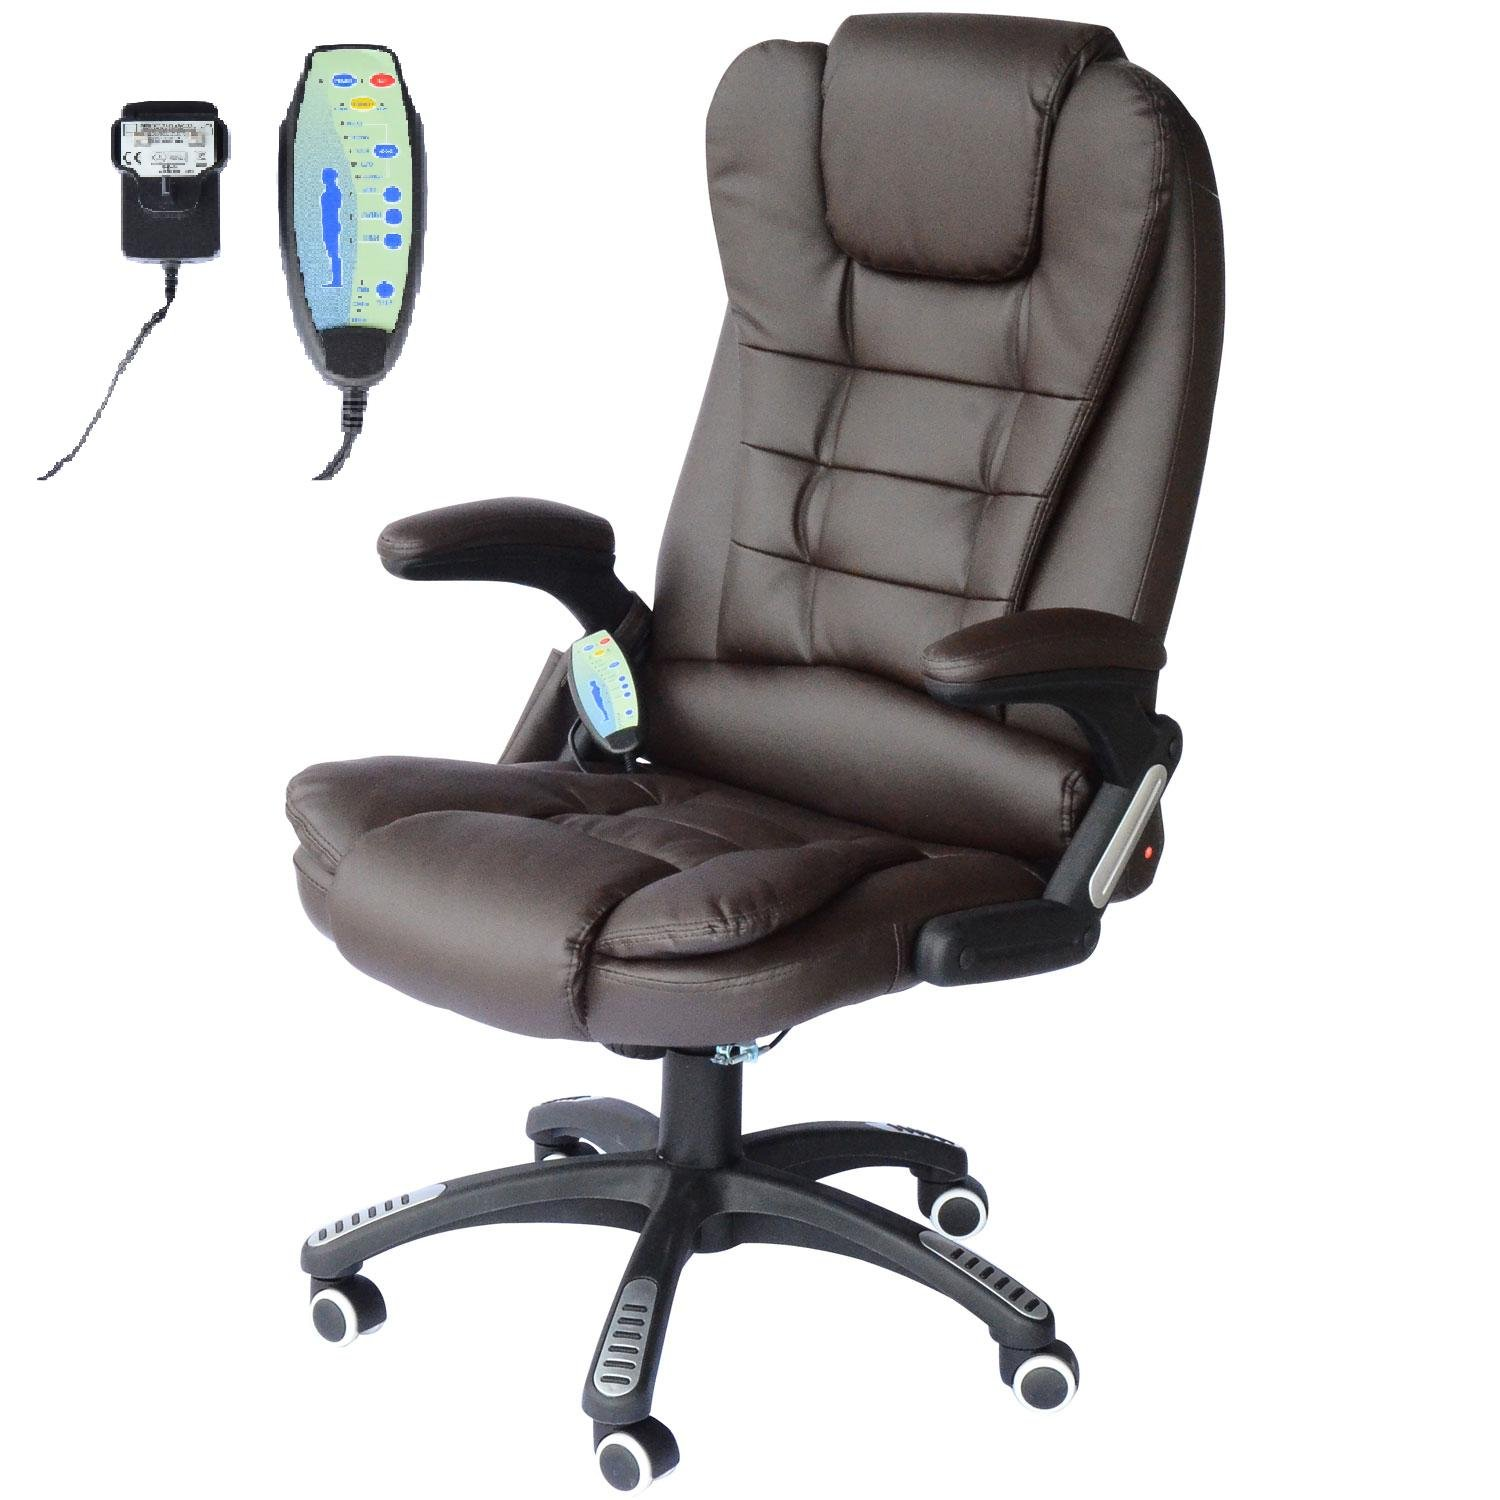 luxury leather office chair. homcom deluxe reclining faux leather office computer chair 6point massage high back desk work swivel brown amazoncouk garden u0026 outdoors luxury i